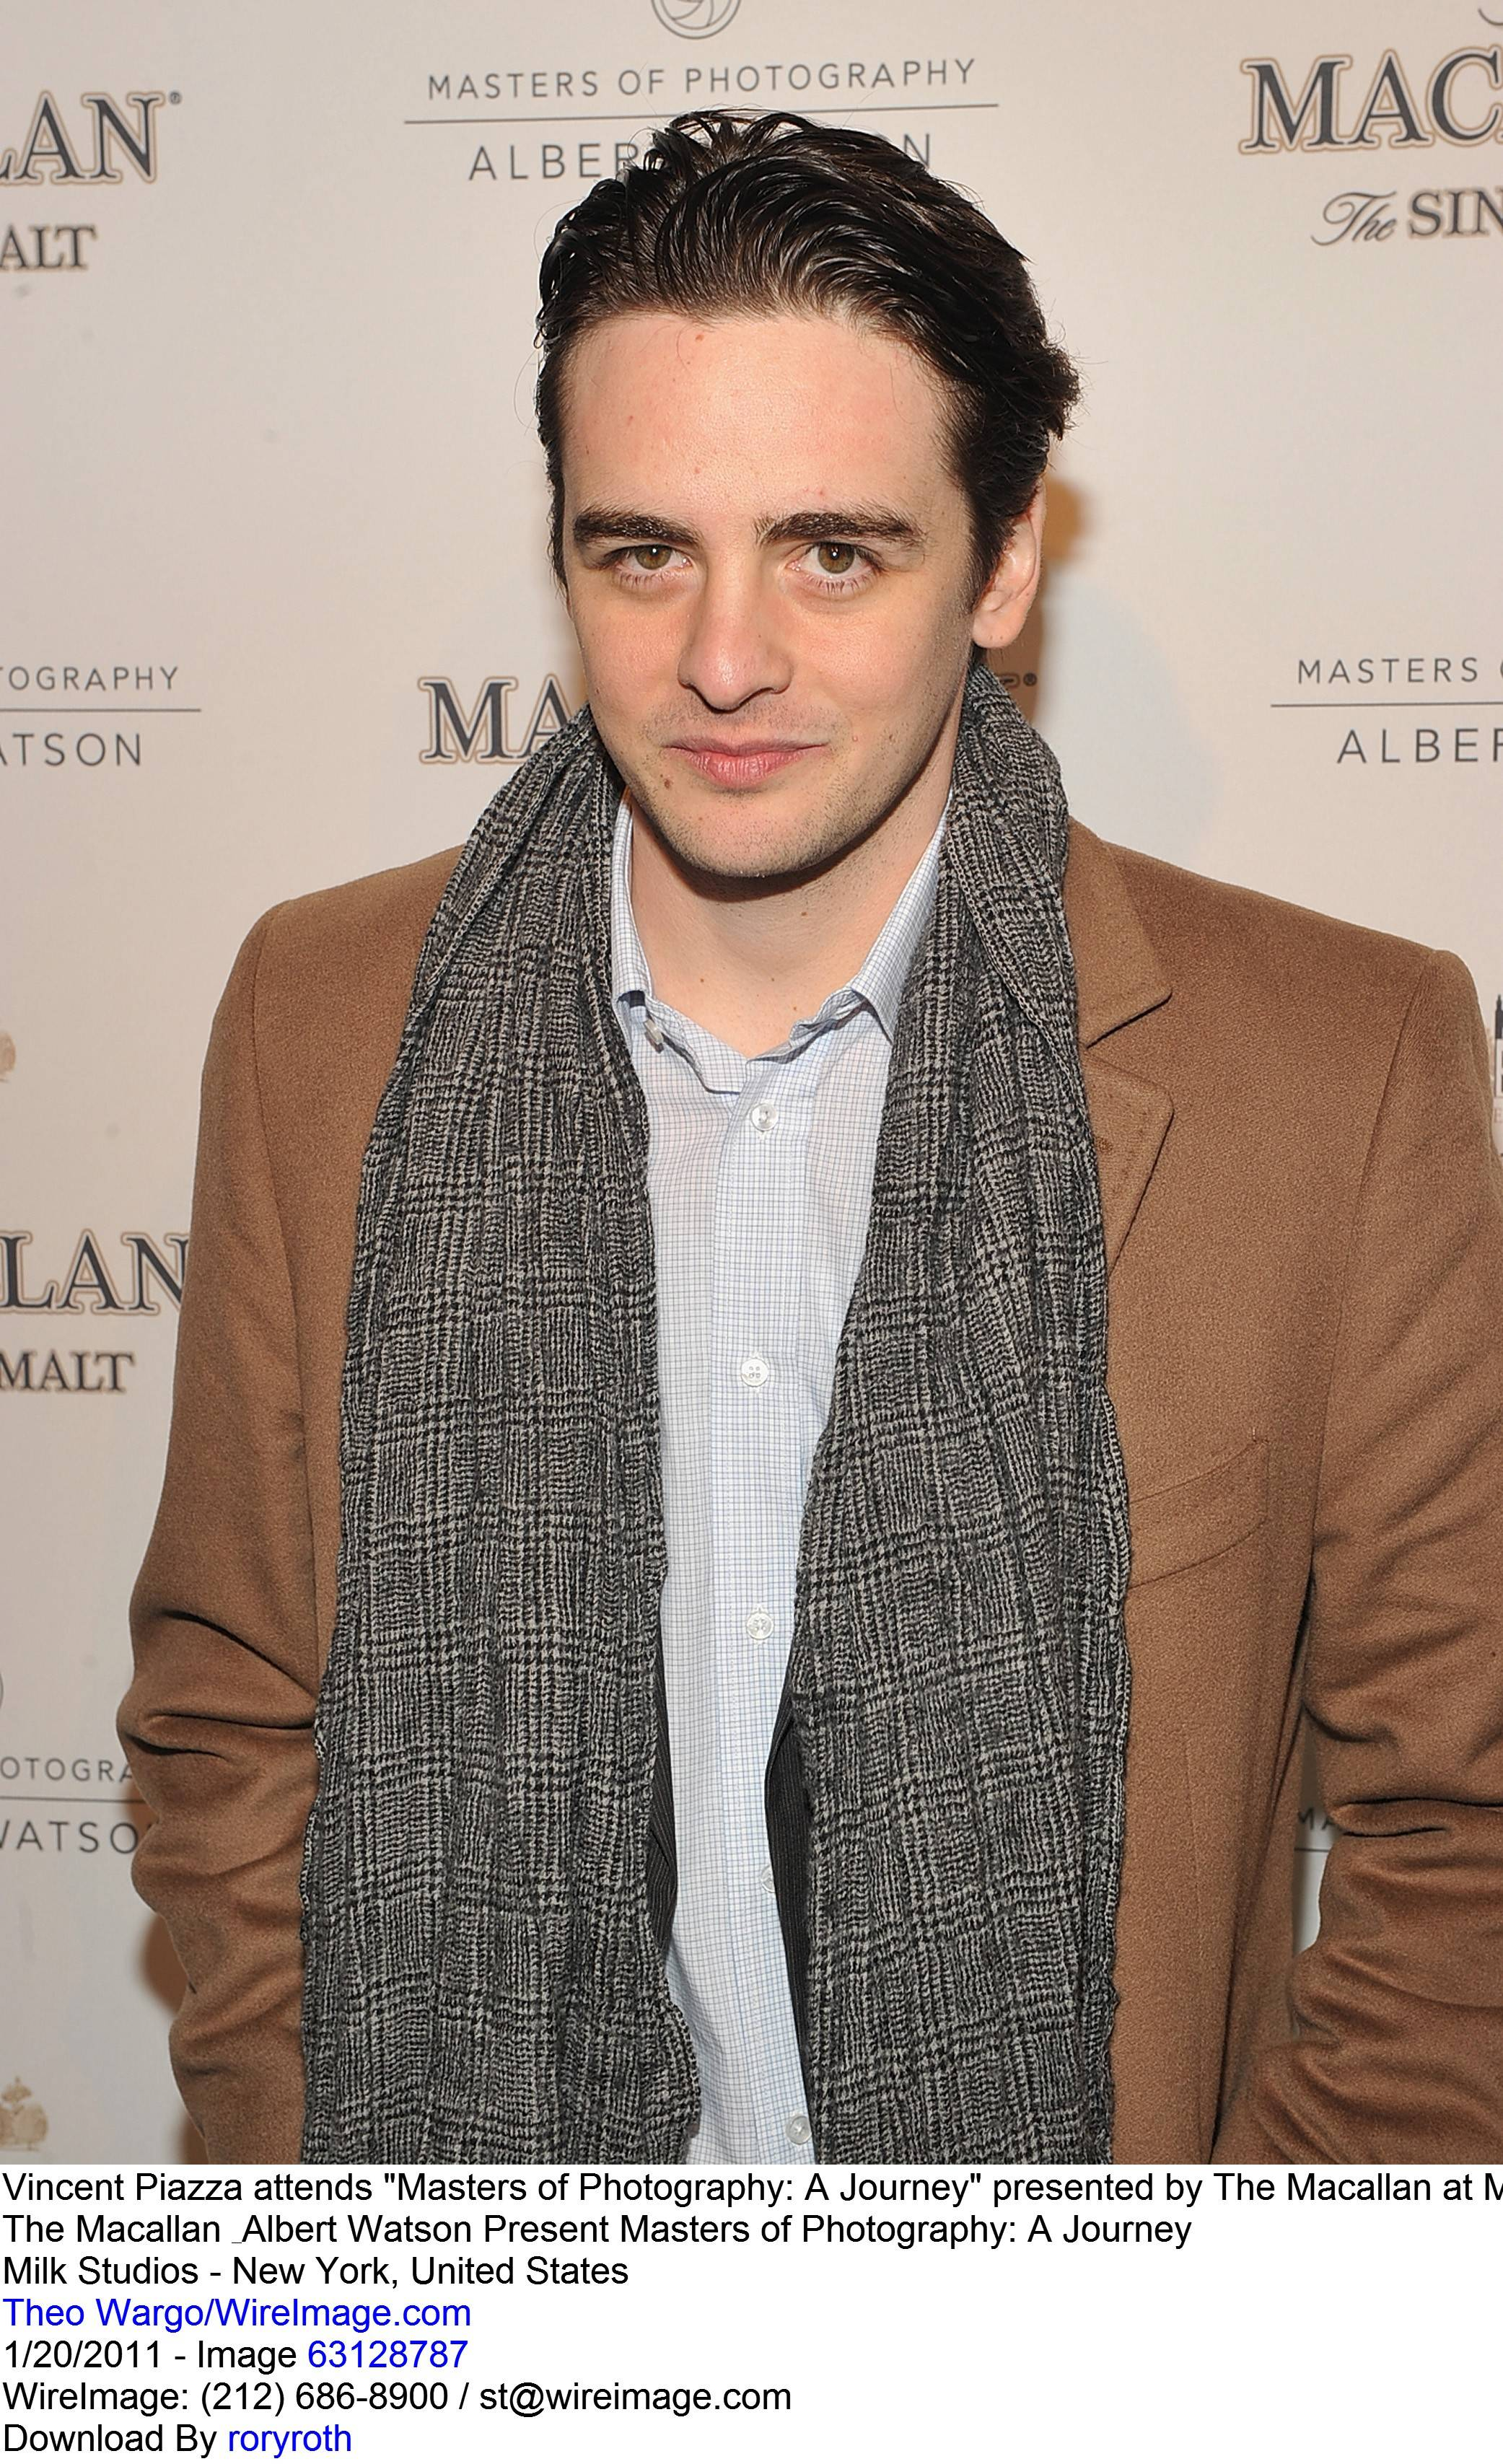 """Vincent Piazza attends """"Masters of Photography: A Journey"""" presented by The Macallan at Milk Studios on January 20, 2011 in New York City."""